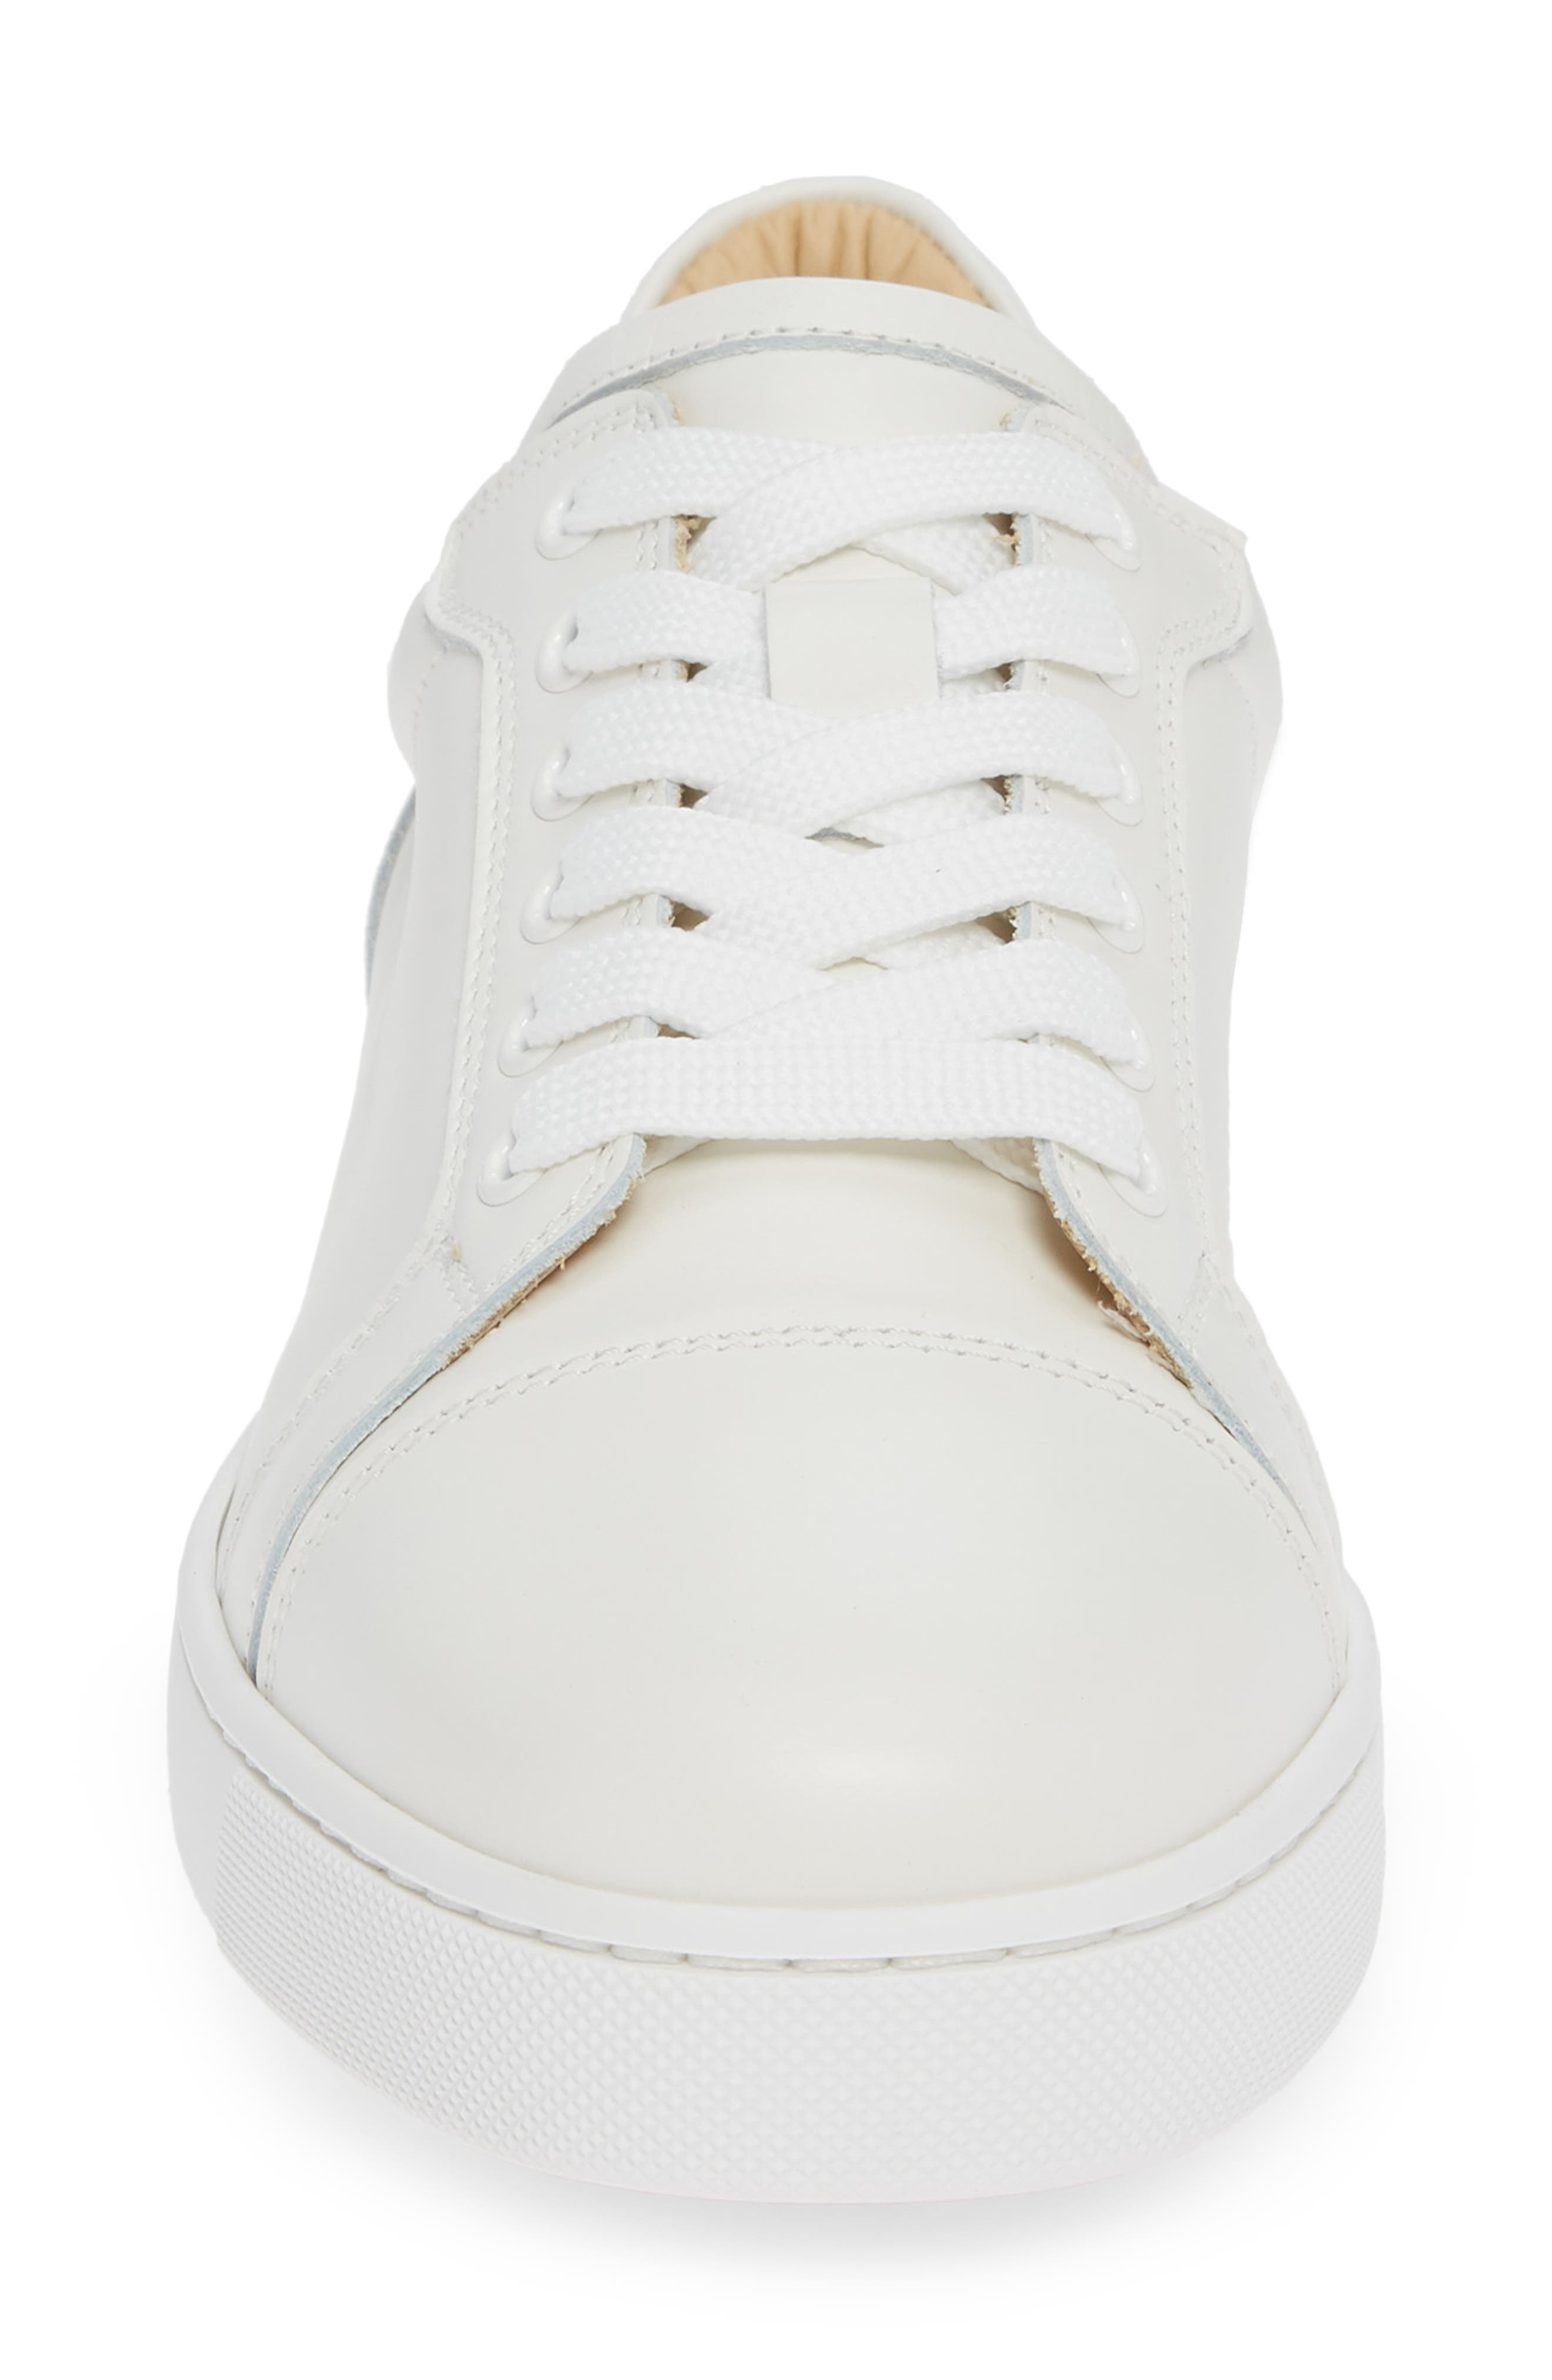 Veira Lace-Up Sneaker,                             Alternate thumbnail 4, color,                             SNOW WHITE